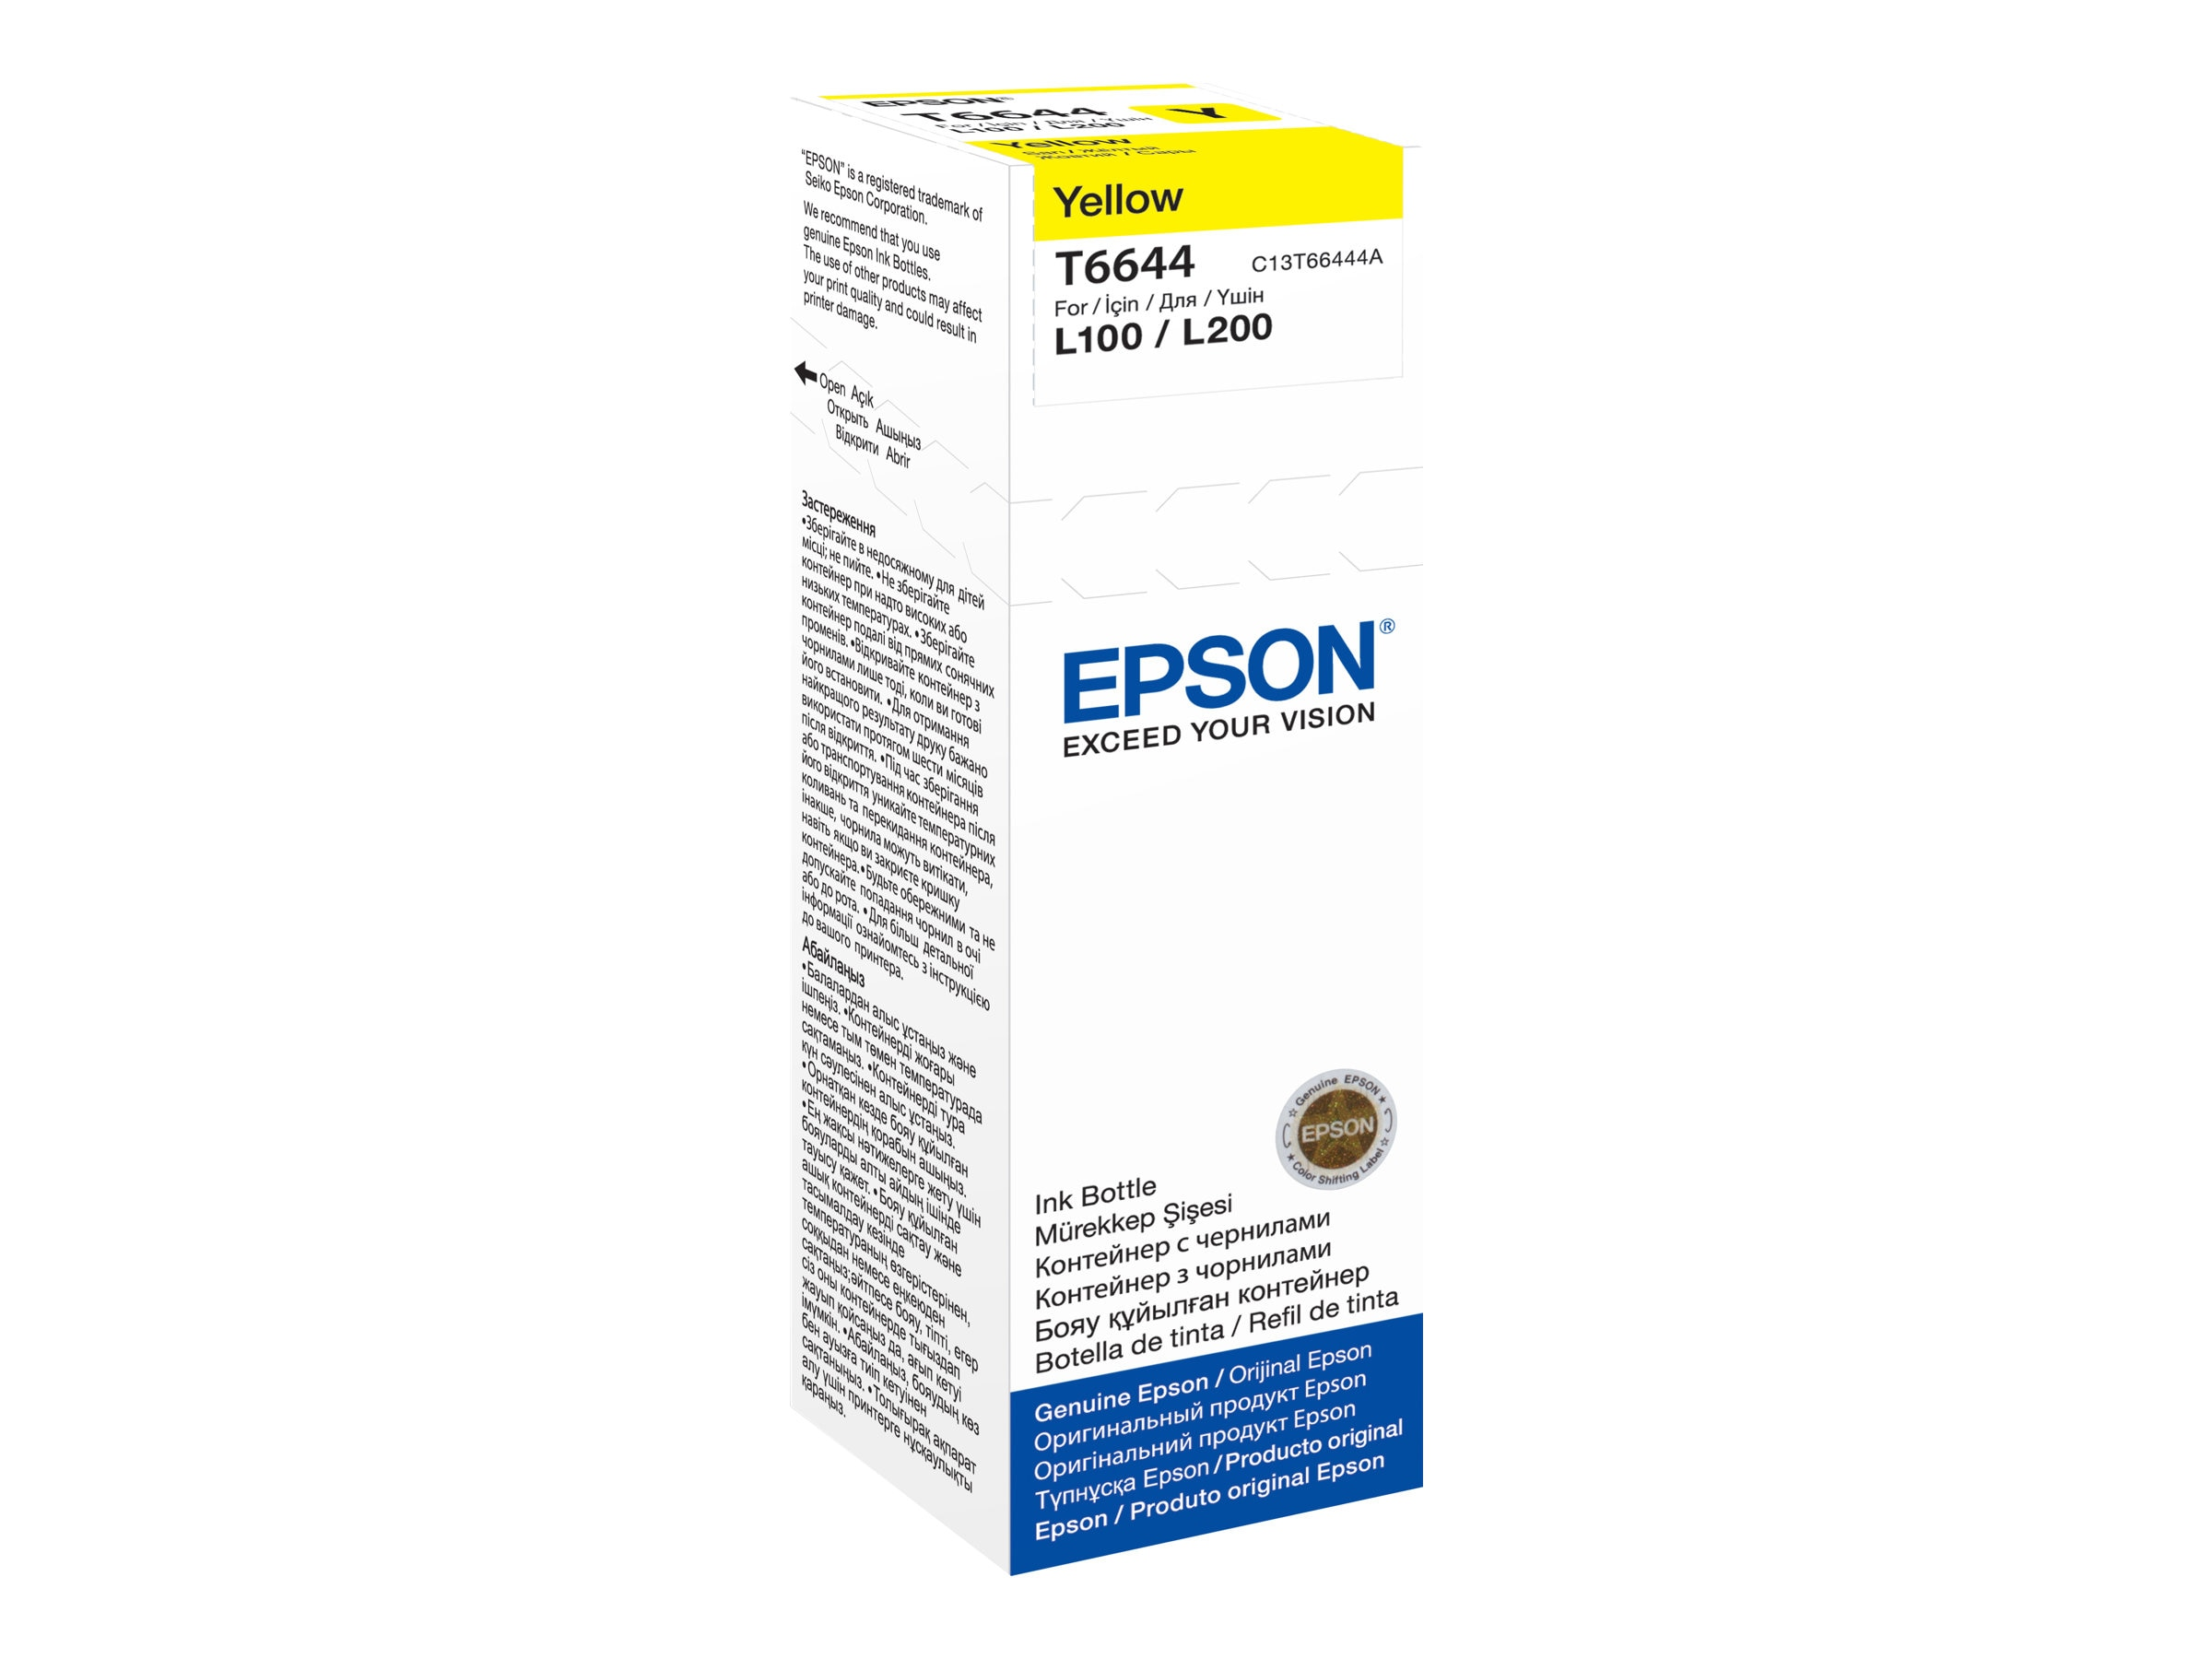 Epson Yellow T664 70ml Dye Ink Bottle, T664420